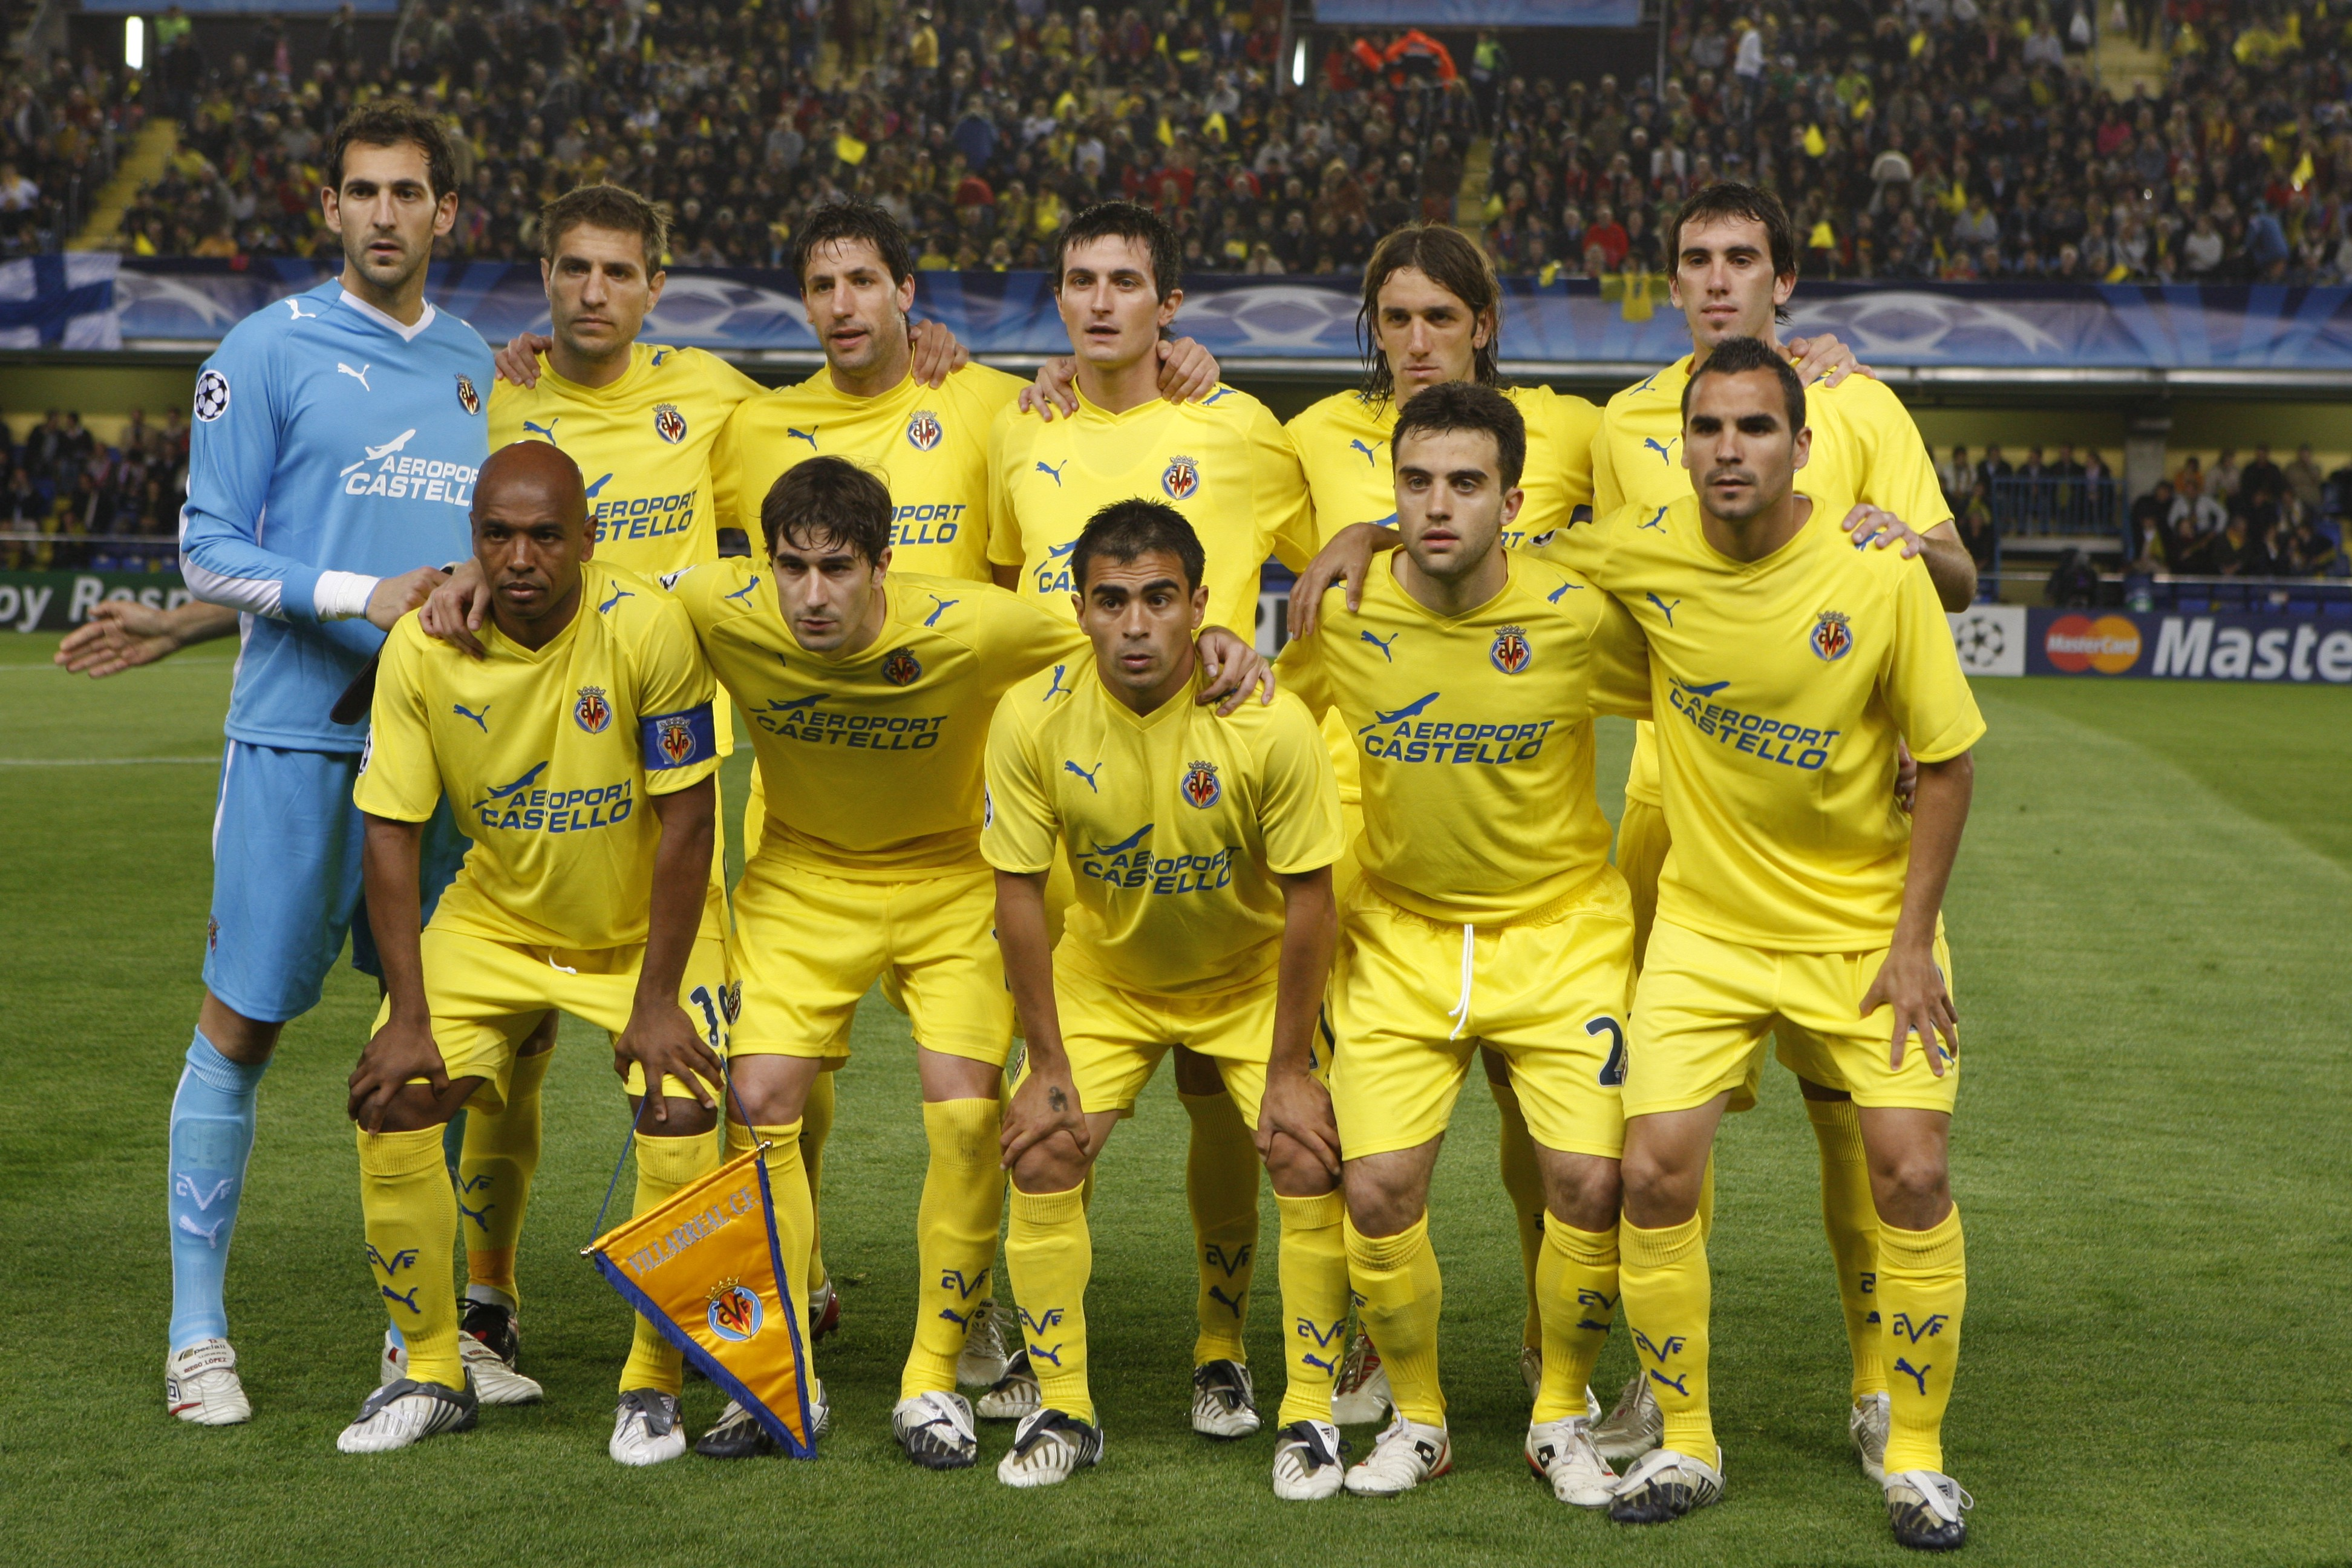 From a small town to the European stage   by Villarreal CF   Villarreal CF    Medium